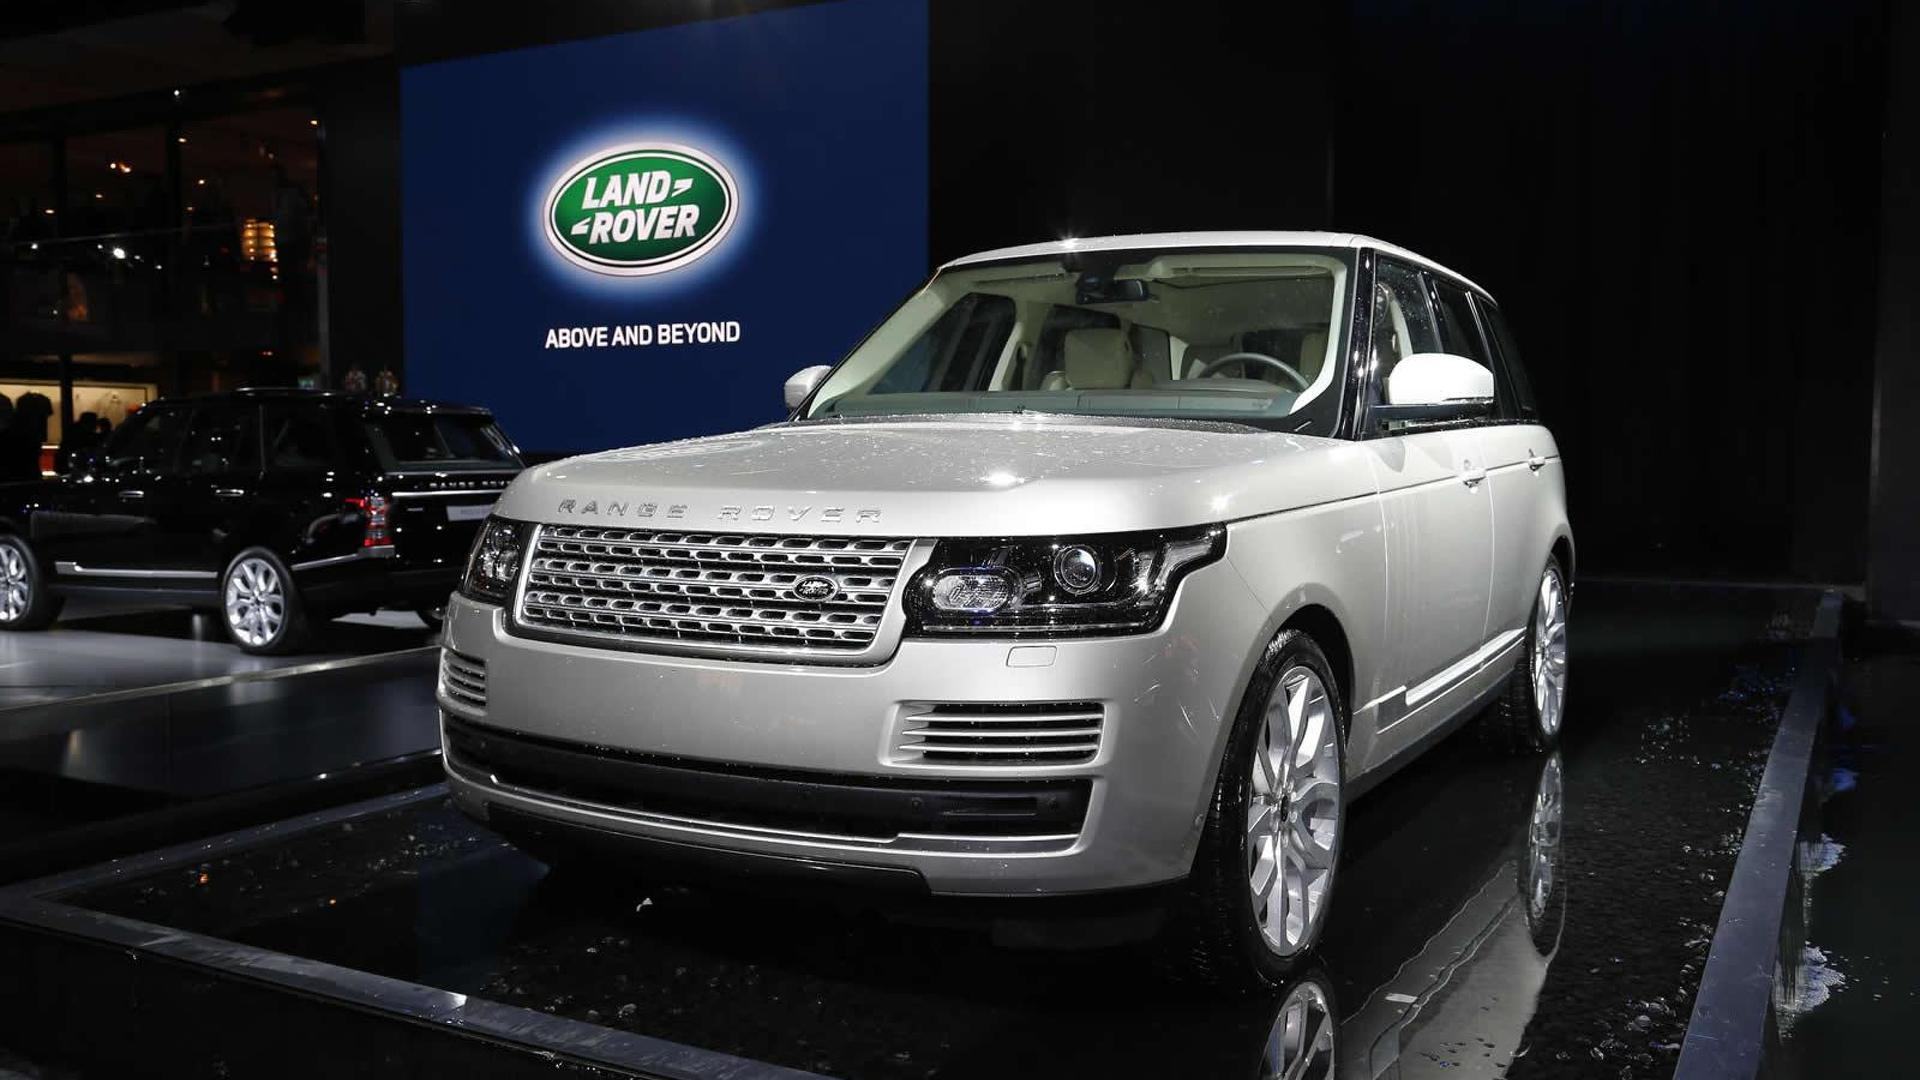 2013 Range Rover grabs Paris attention